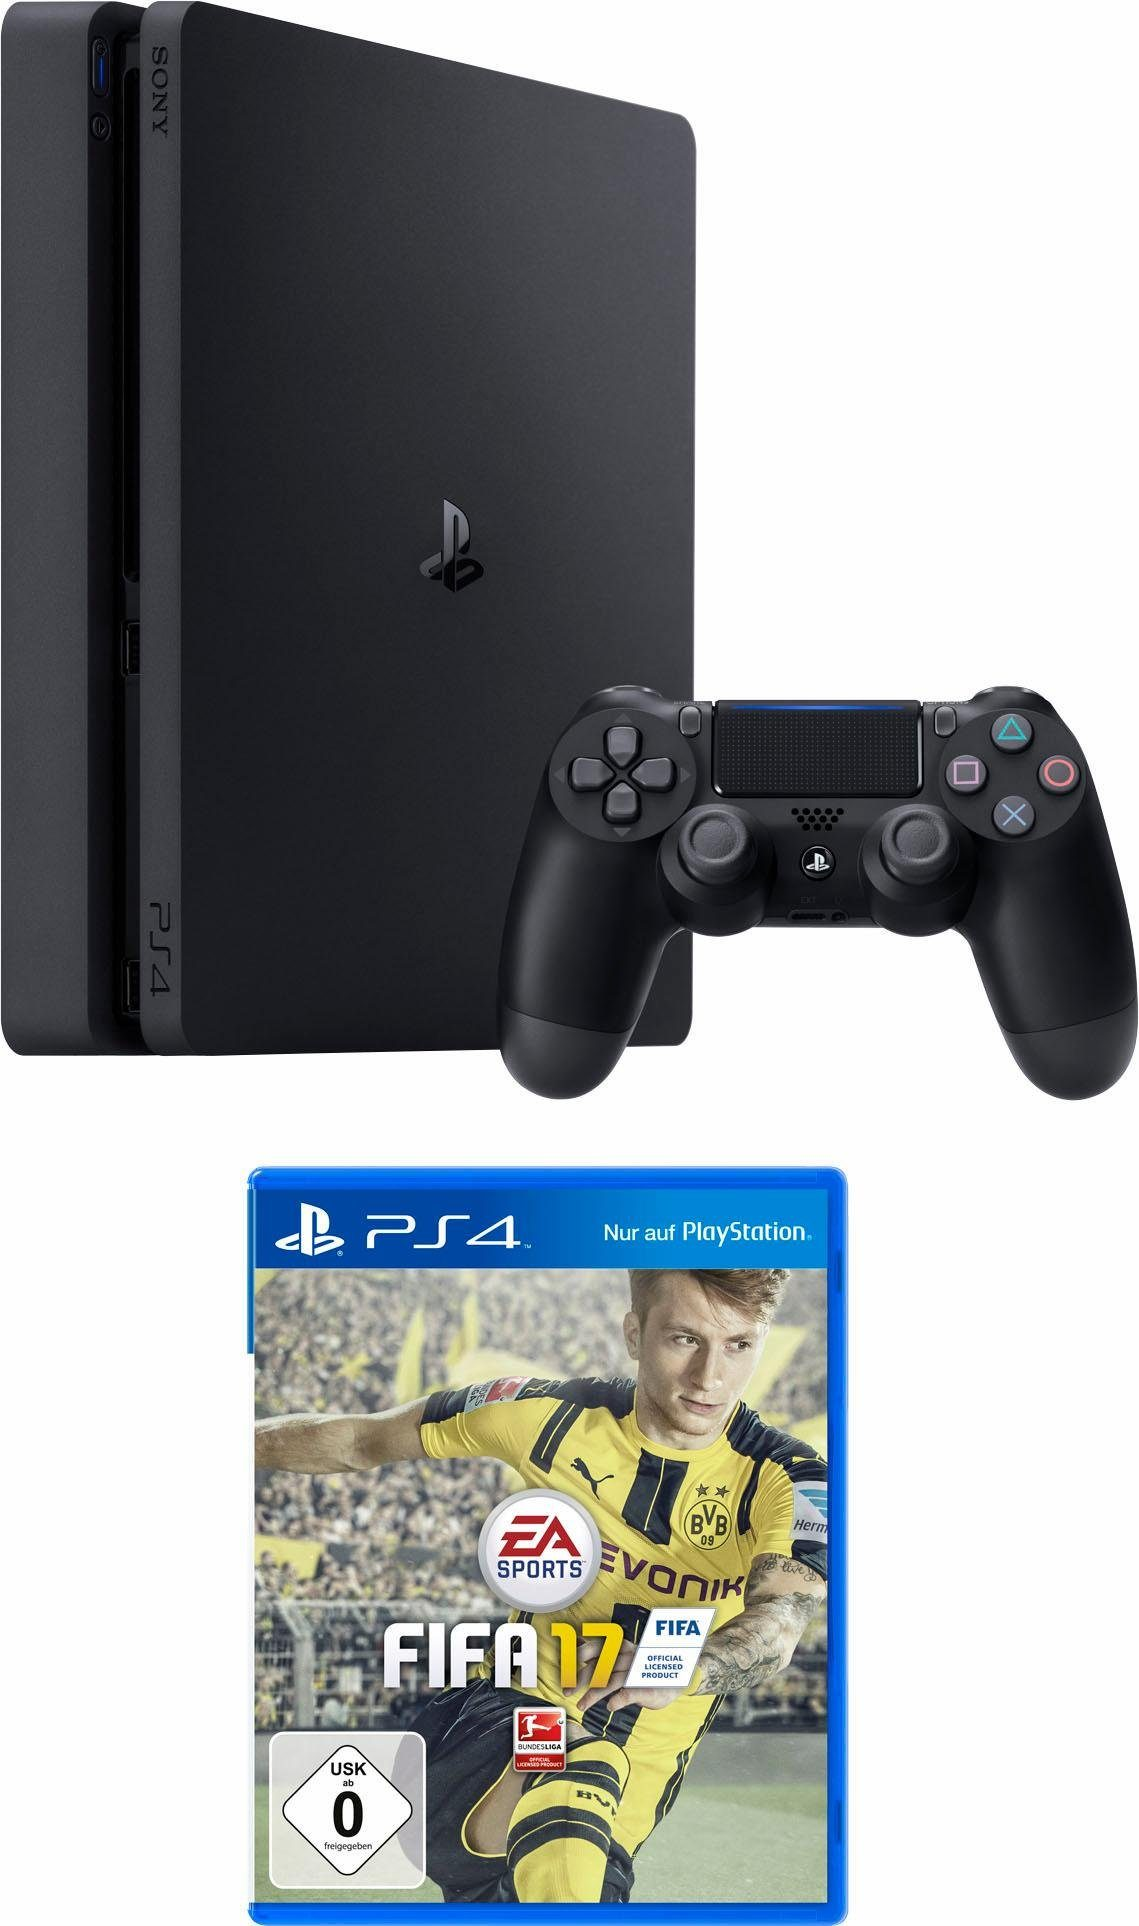 PlayStation 4 (PS4) 500GB Slim + Fifa 17